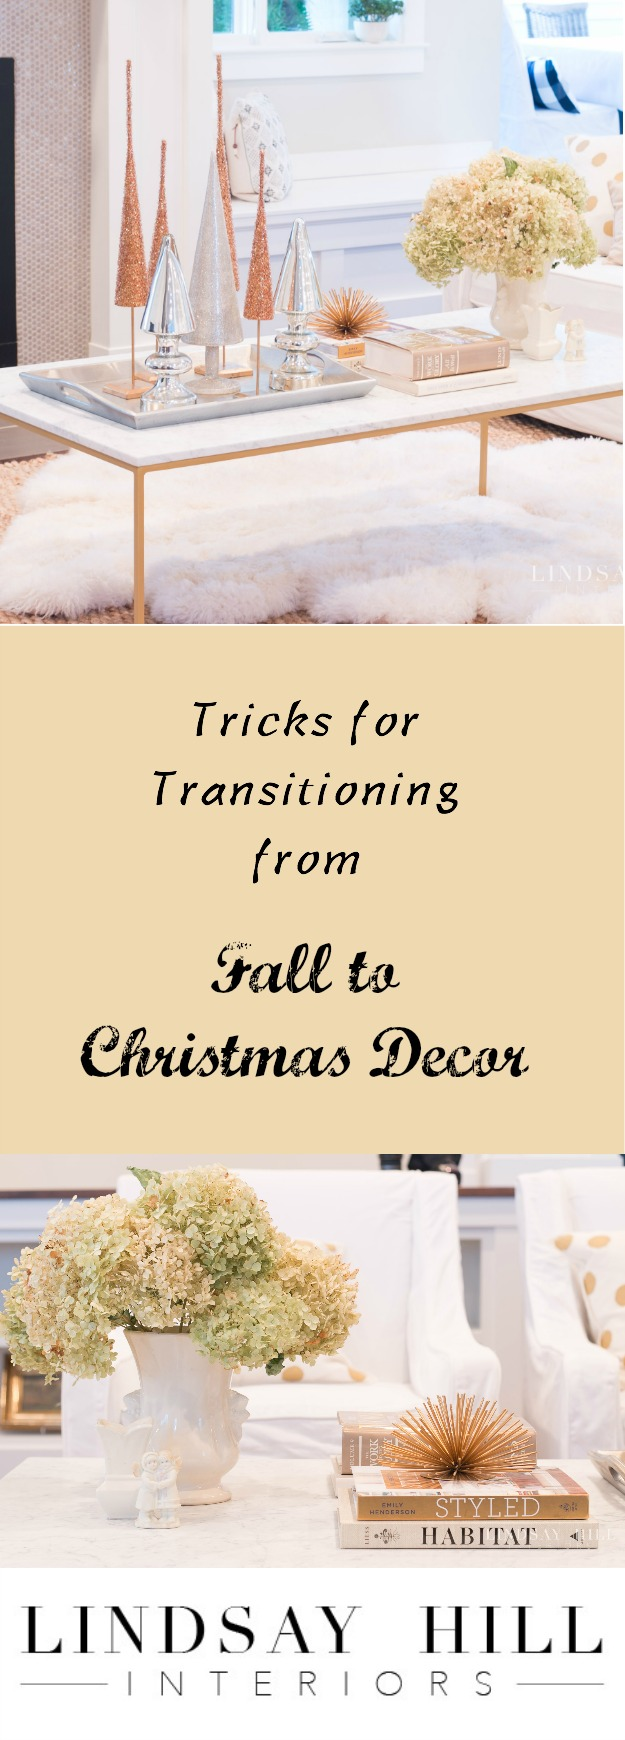 Tricks for transitioning from Fall to Christmas decor!